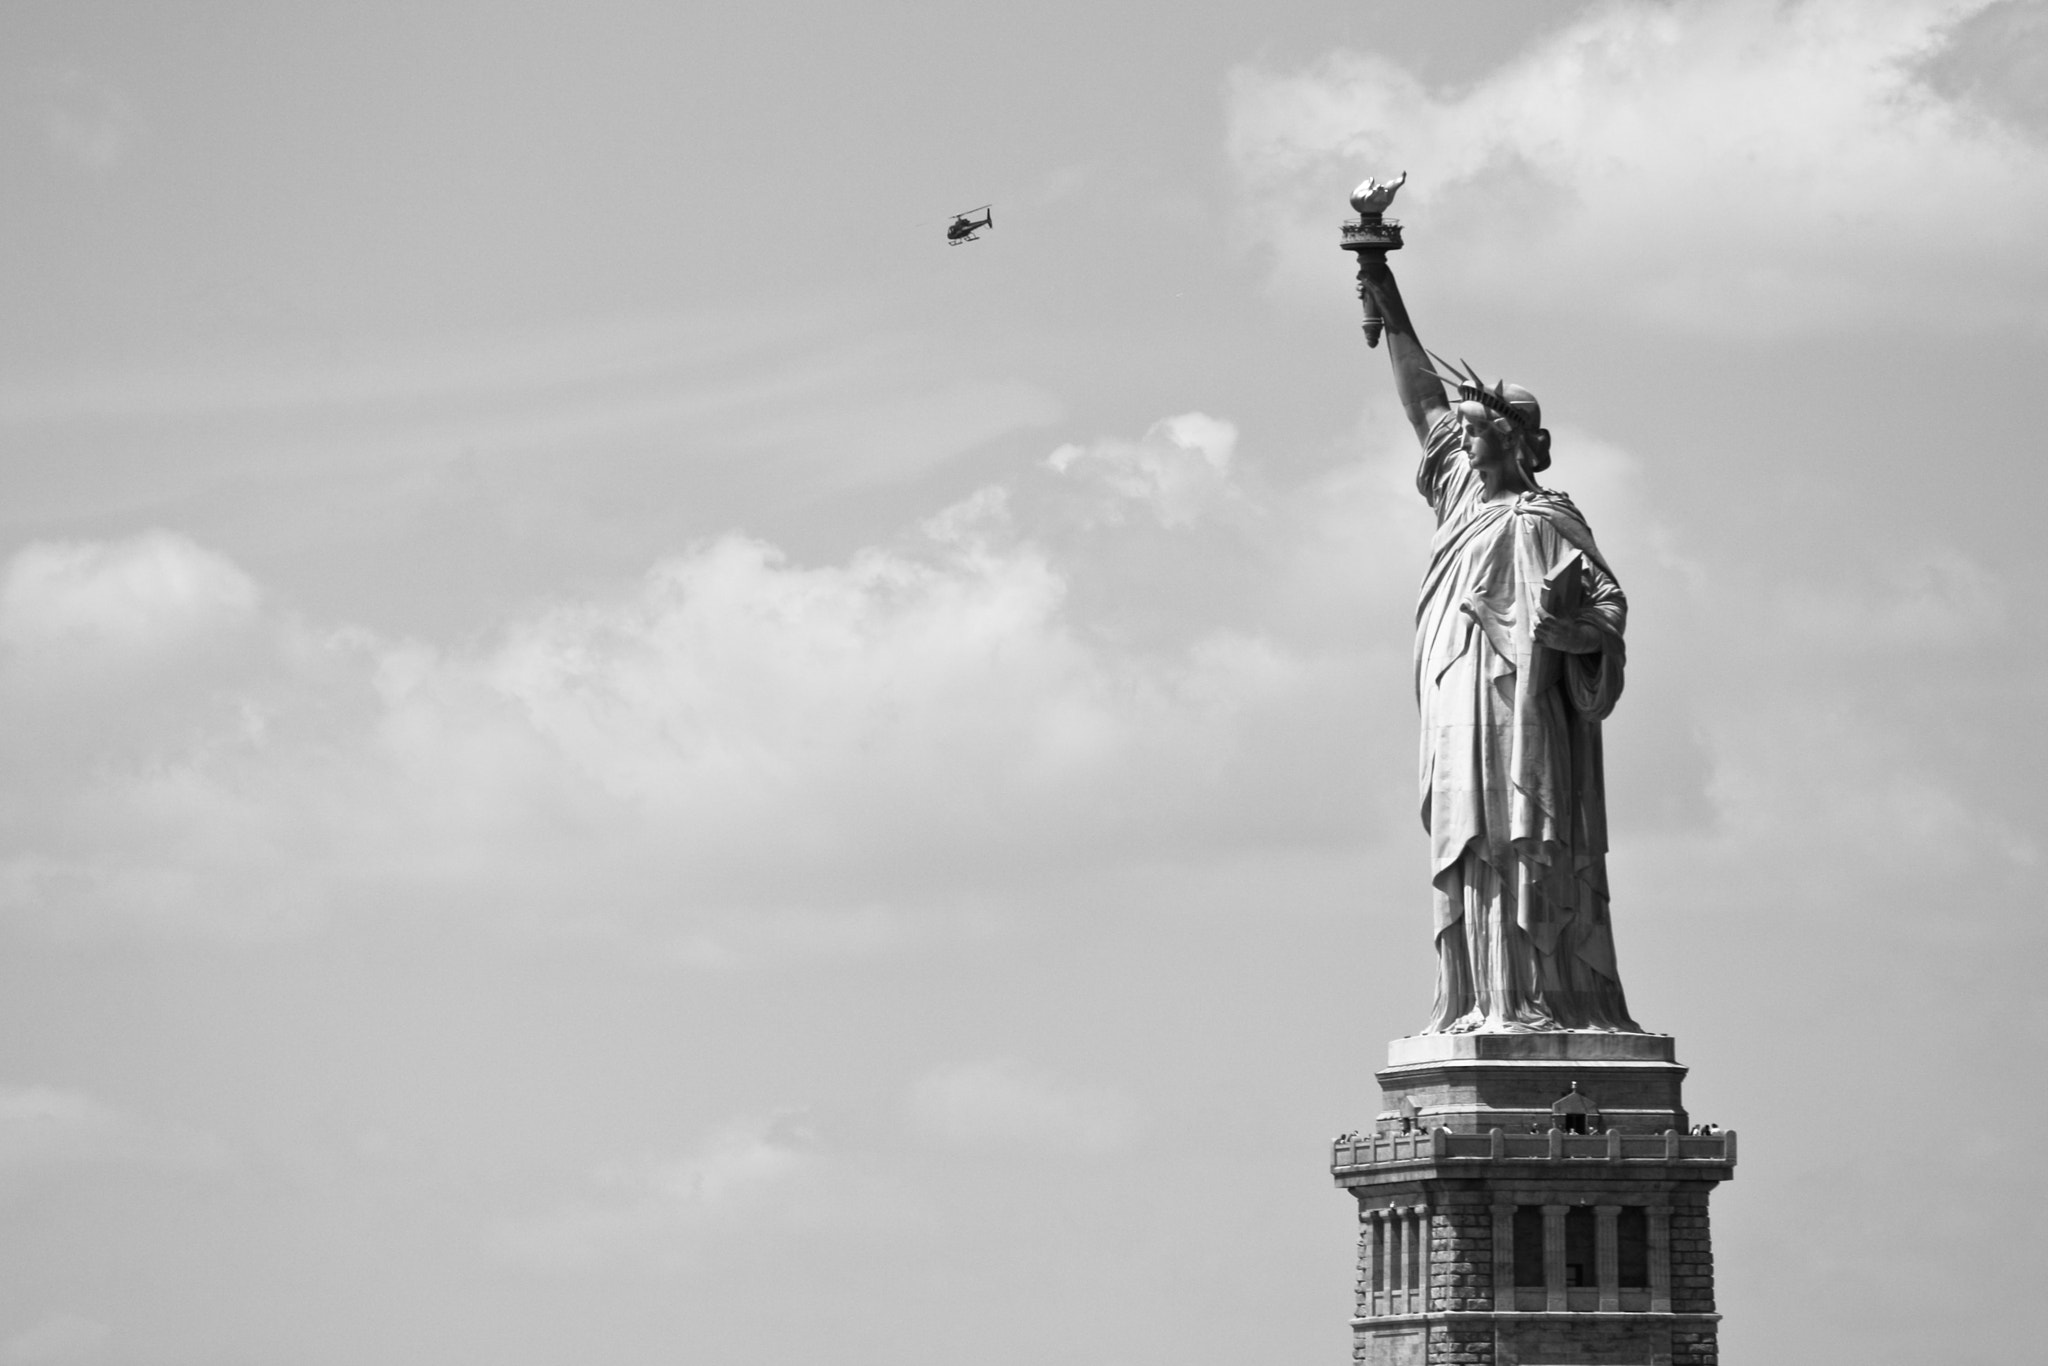 Photograph Statue of Liberty - New York City by Philippe Siccardi on 500px